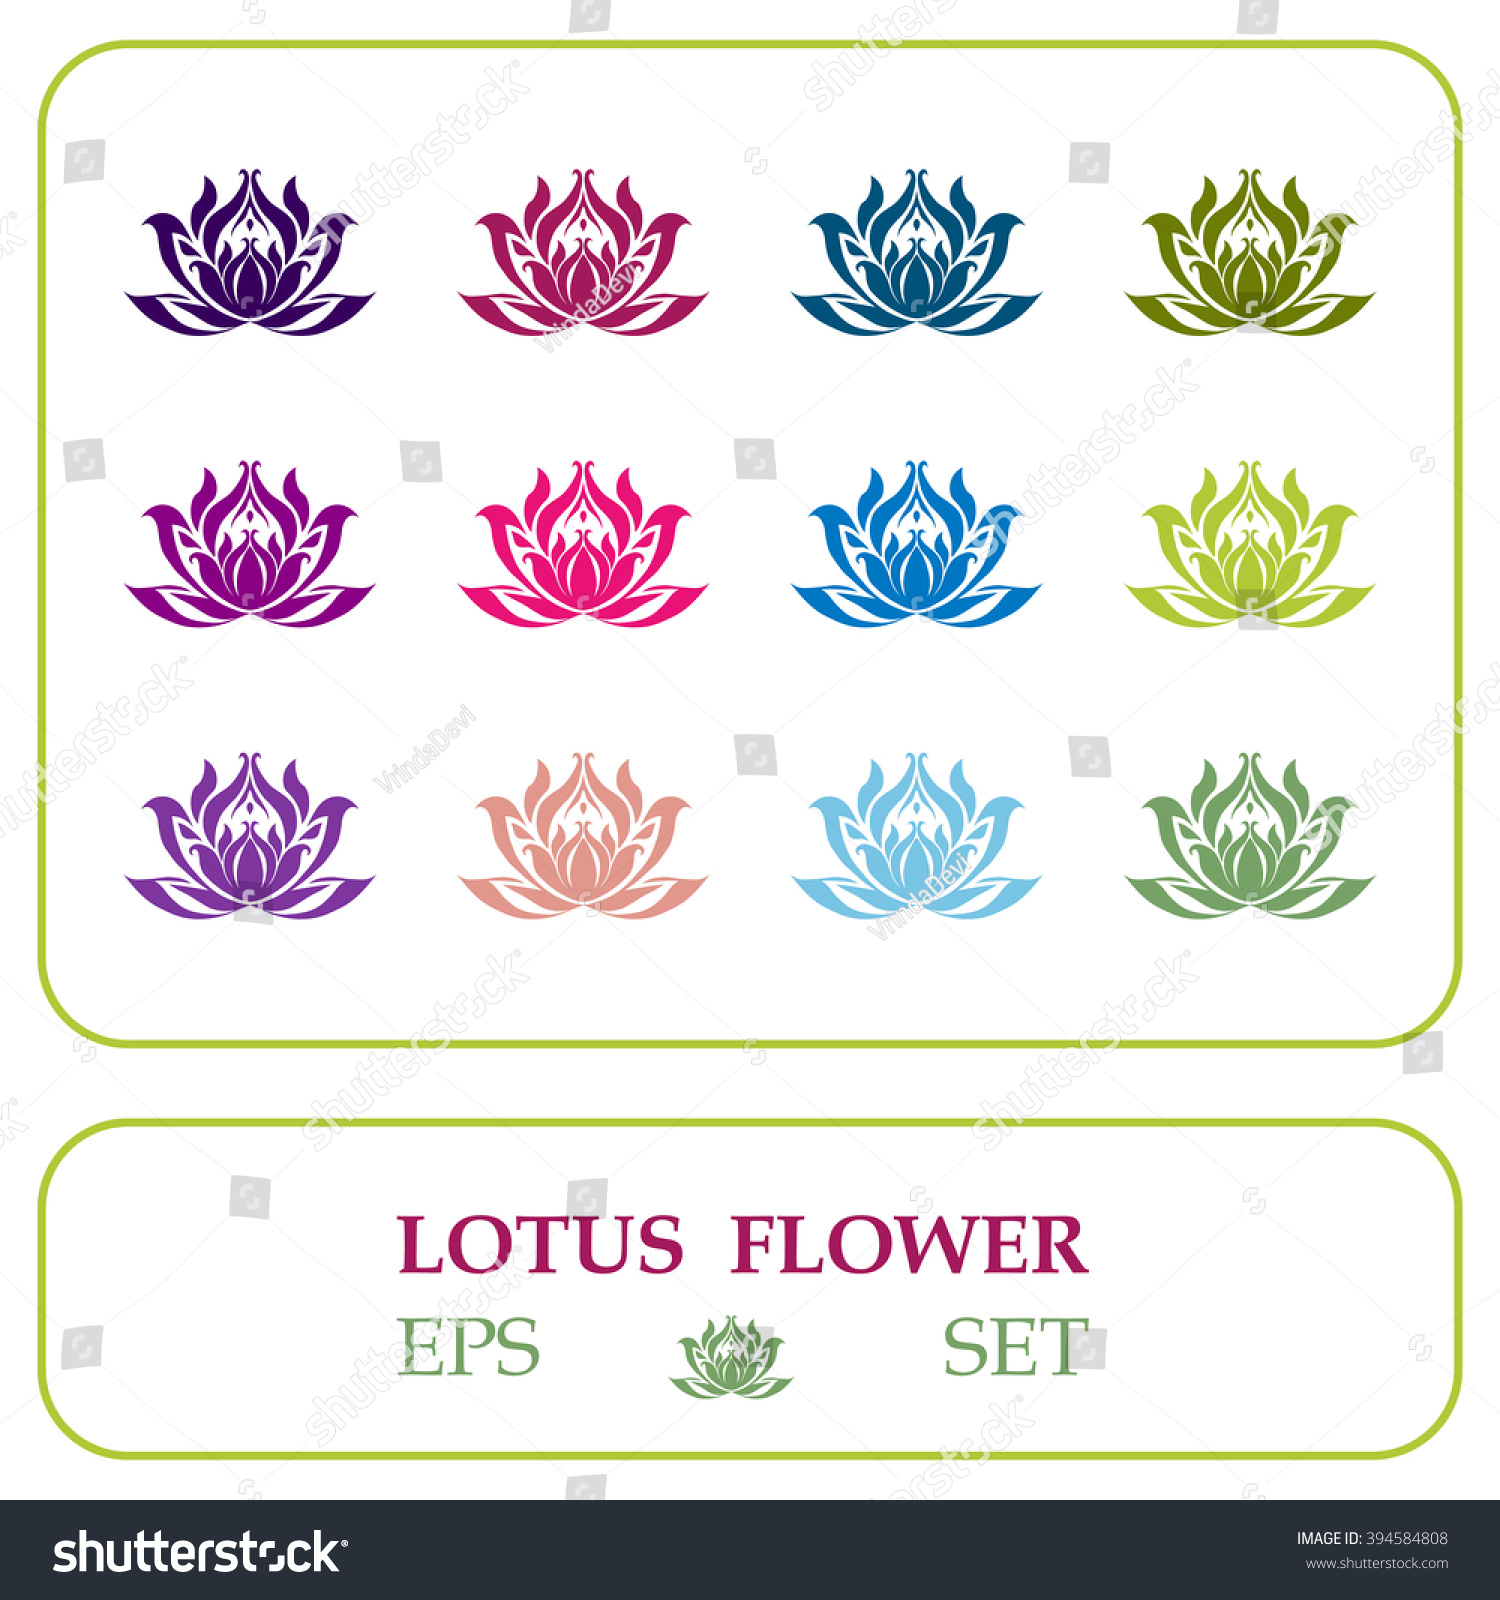 Set vectorized lotus flower vector illustration stock vector set of vectorized lotus flower vector illustration with various colors of water lilies lotus izmirmasajfo